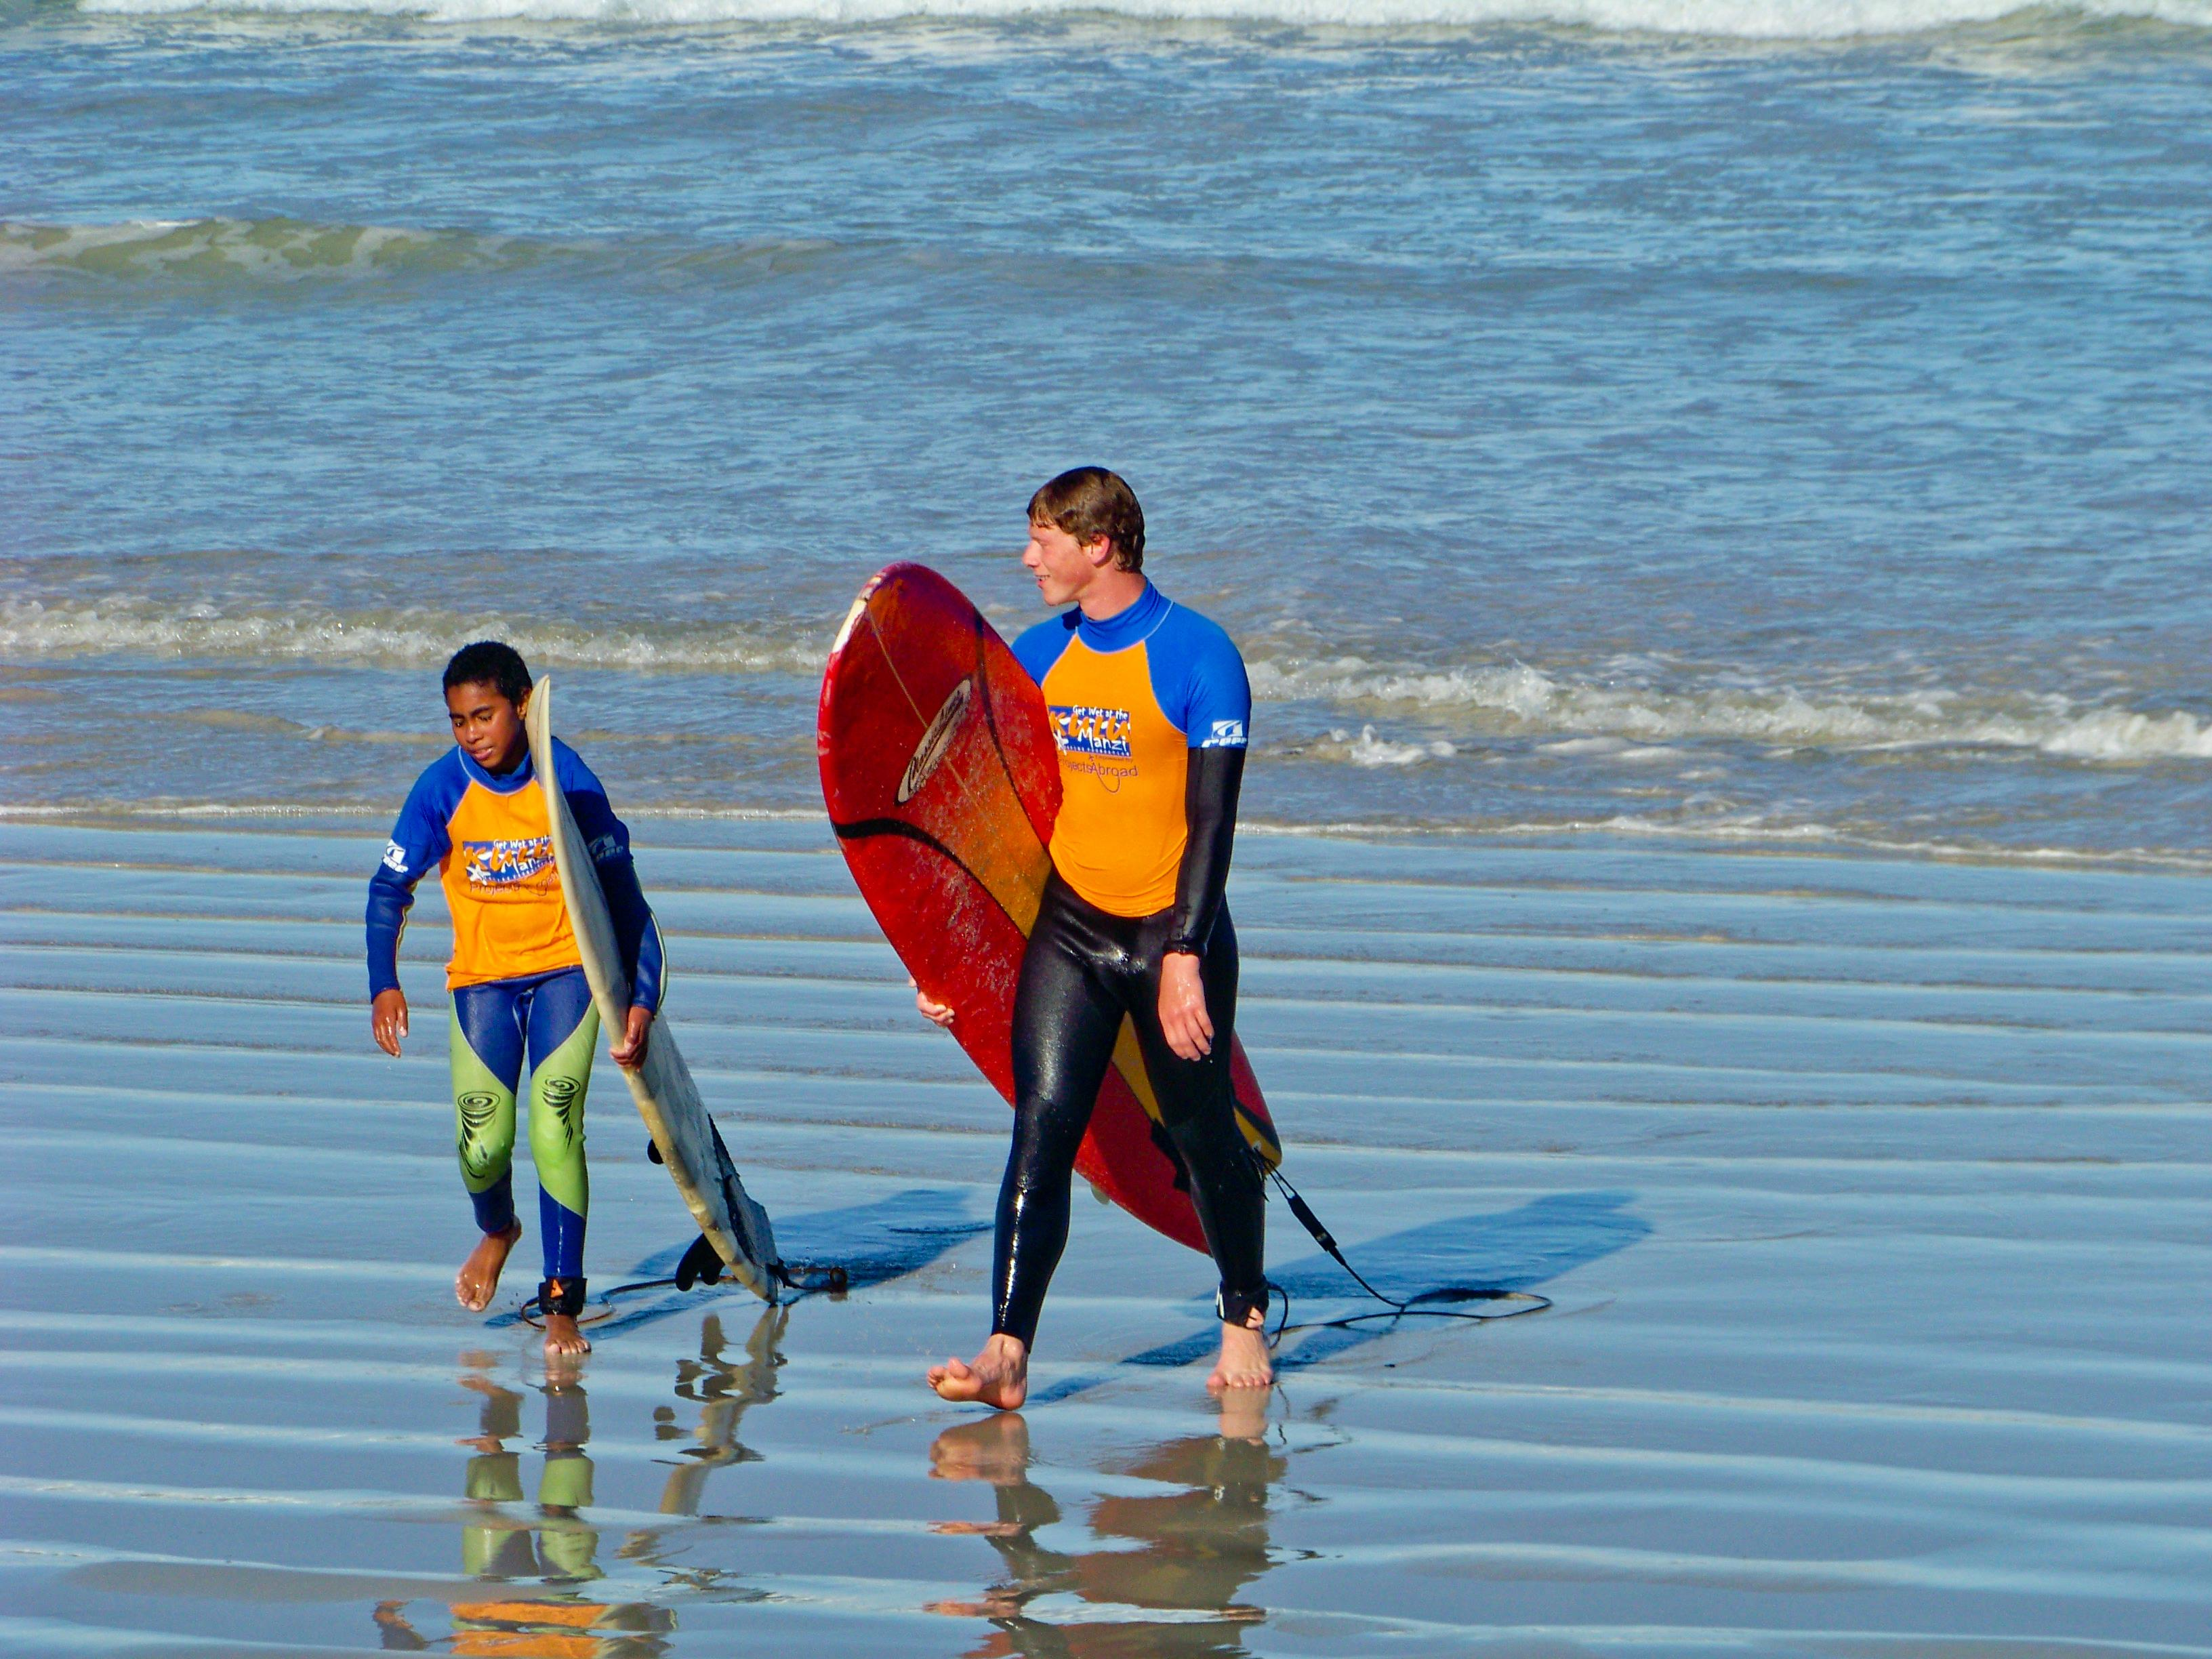 A volunteer works closely with a child to teach surfing in South Africa